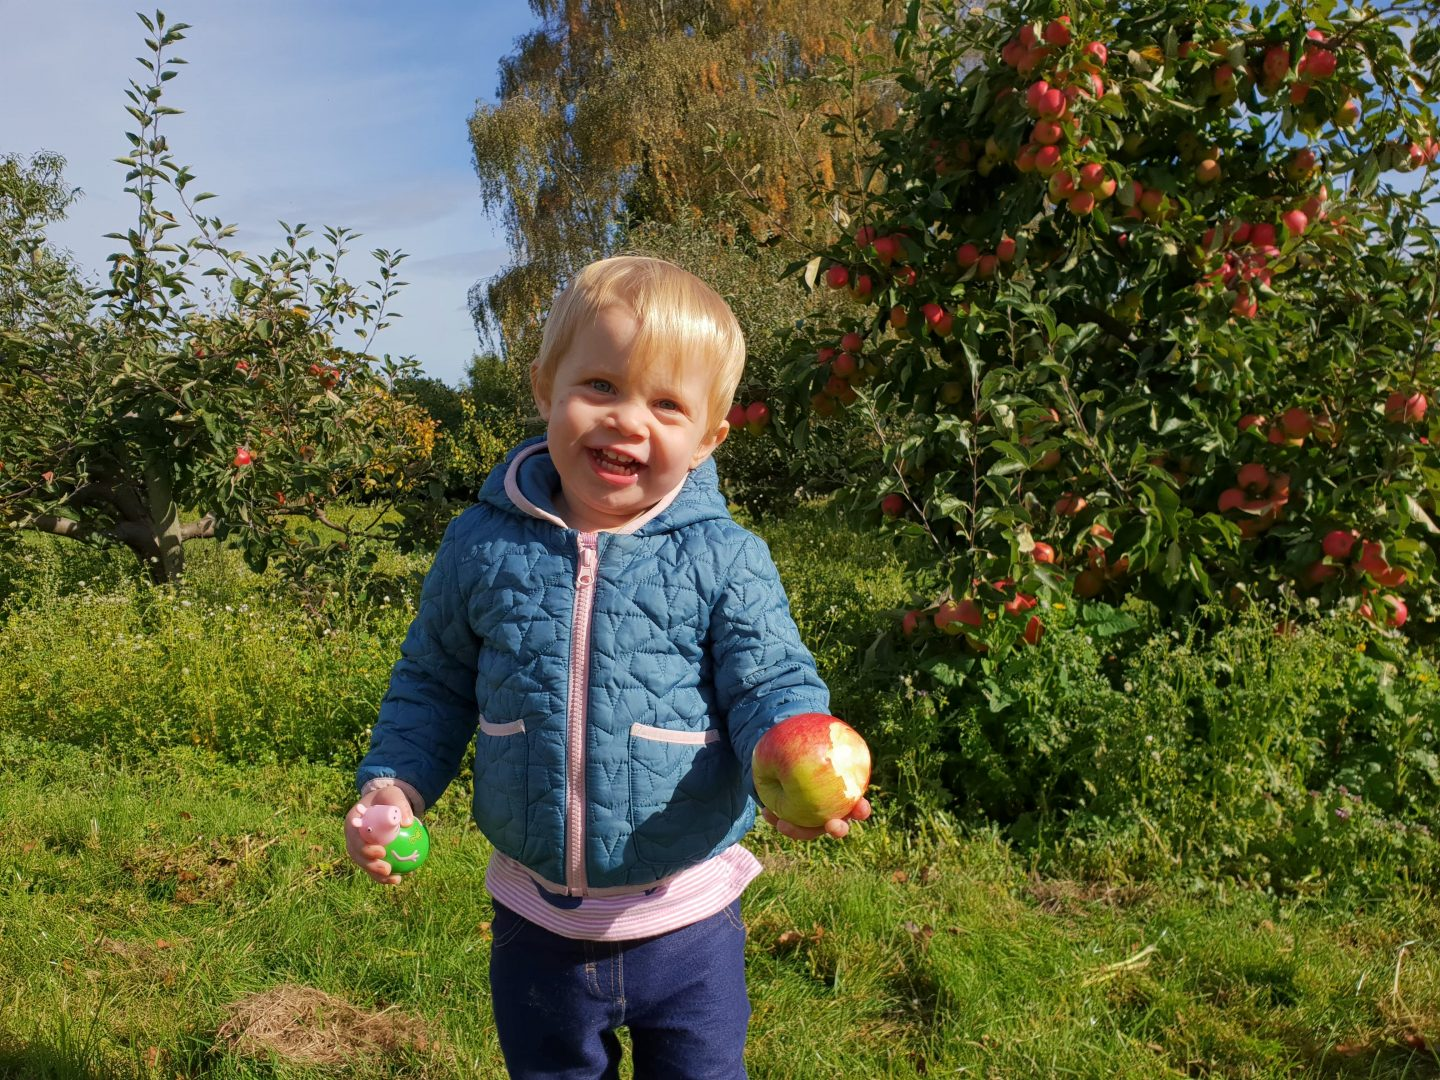 Toddler at Foxendown Fruit Farm in Meopham with apple